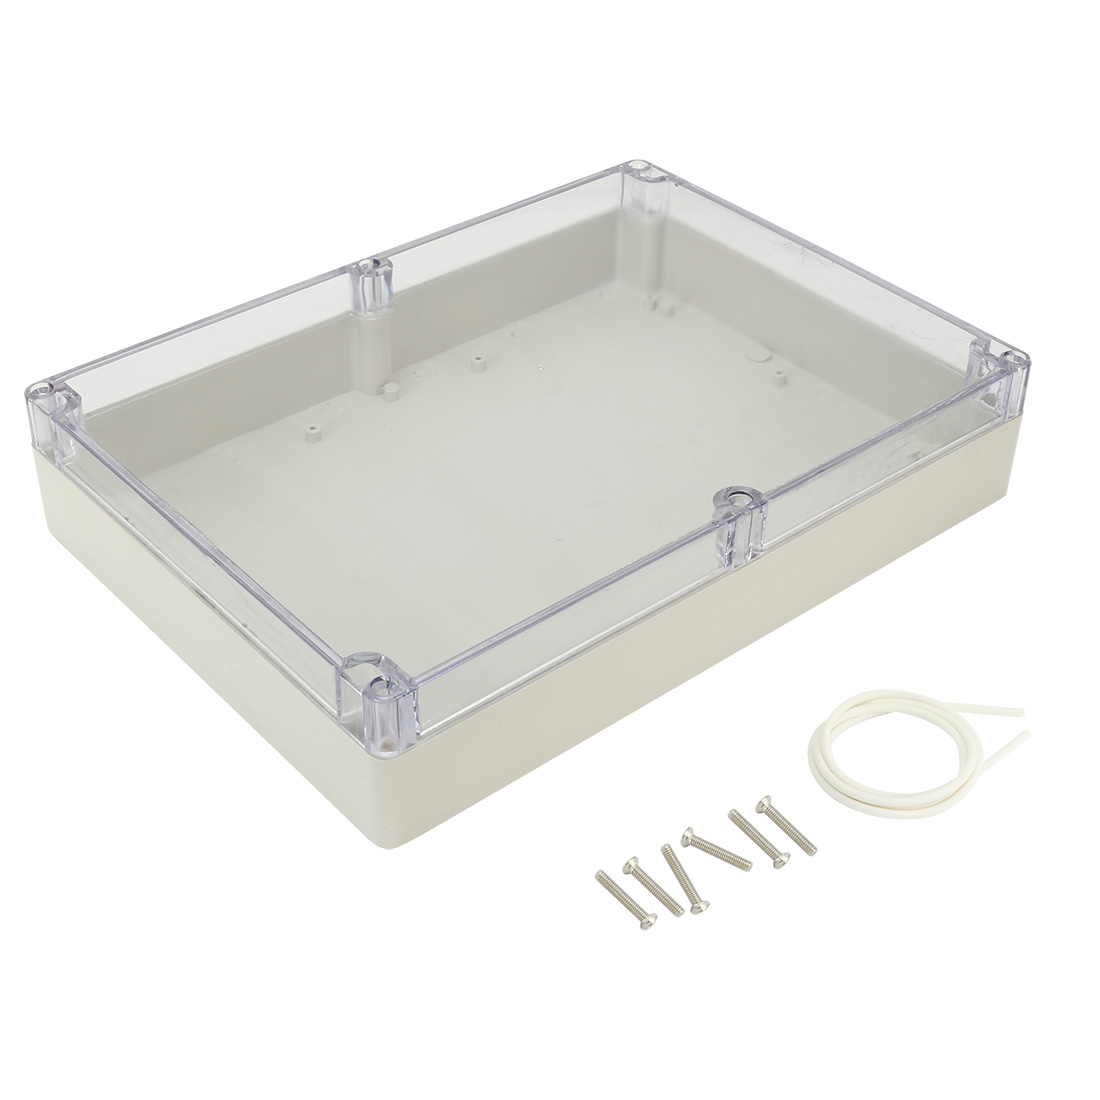 "11.4""x8.3""x2.3""(290mmx210mmx60mm) ABS Junction Box Universal Project Enclosure w PC Transparent Cover"